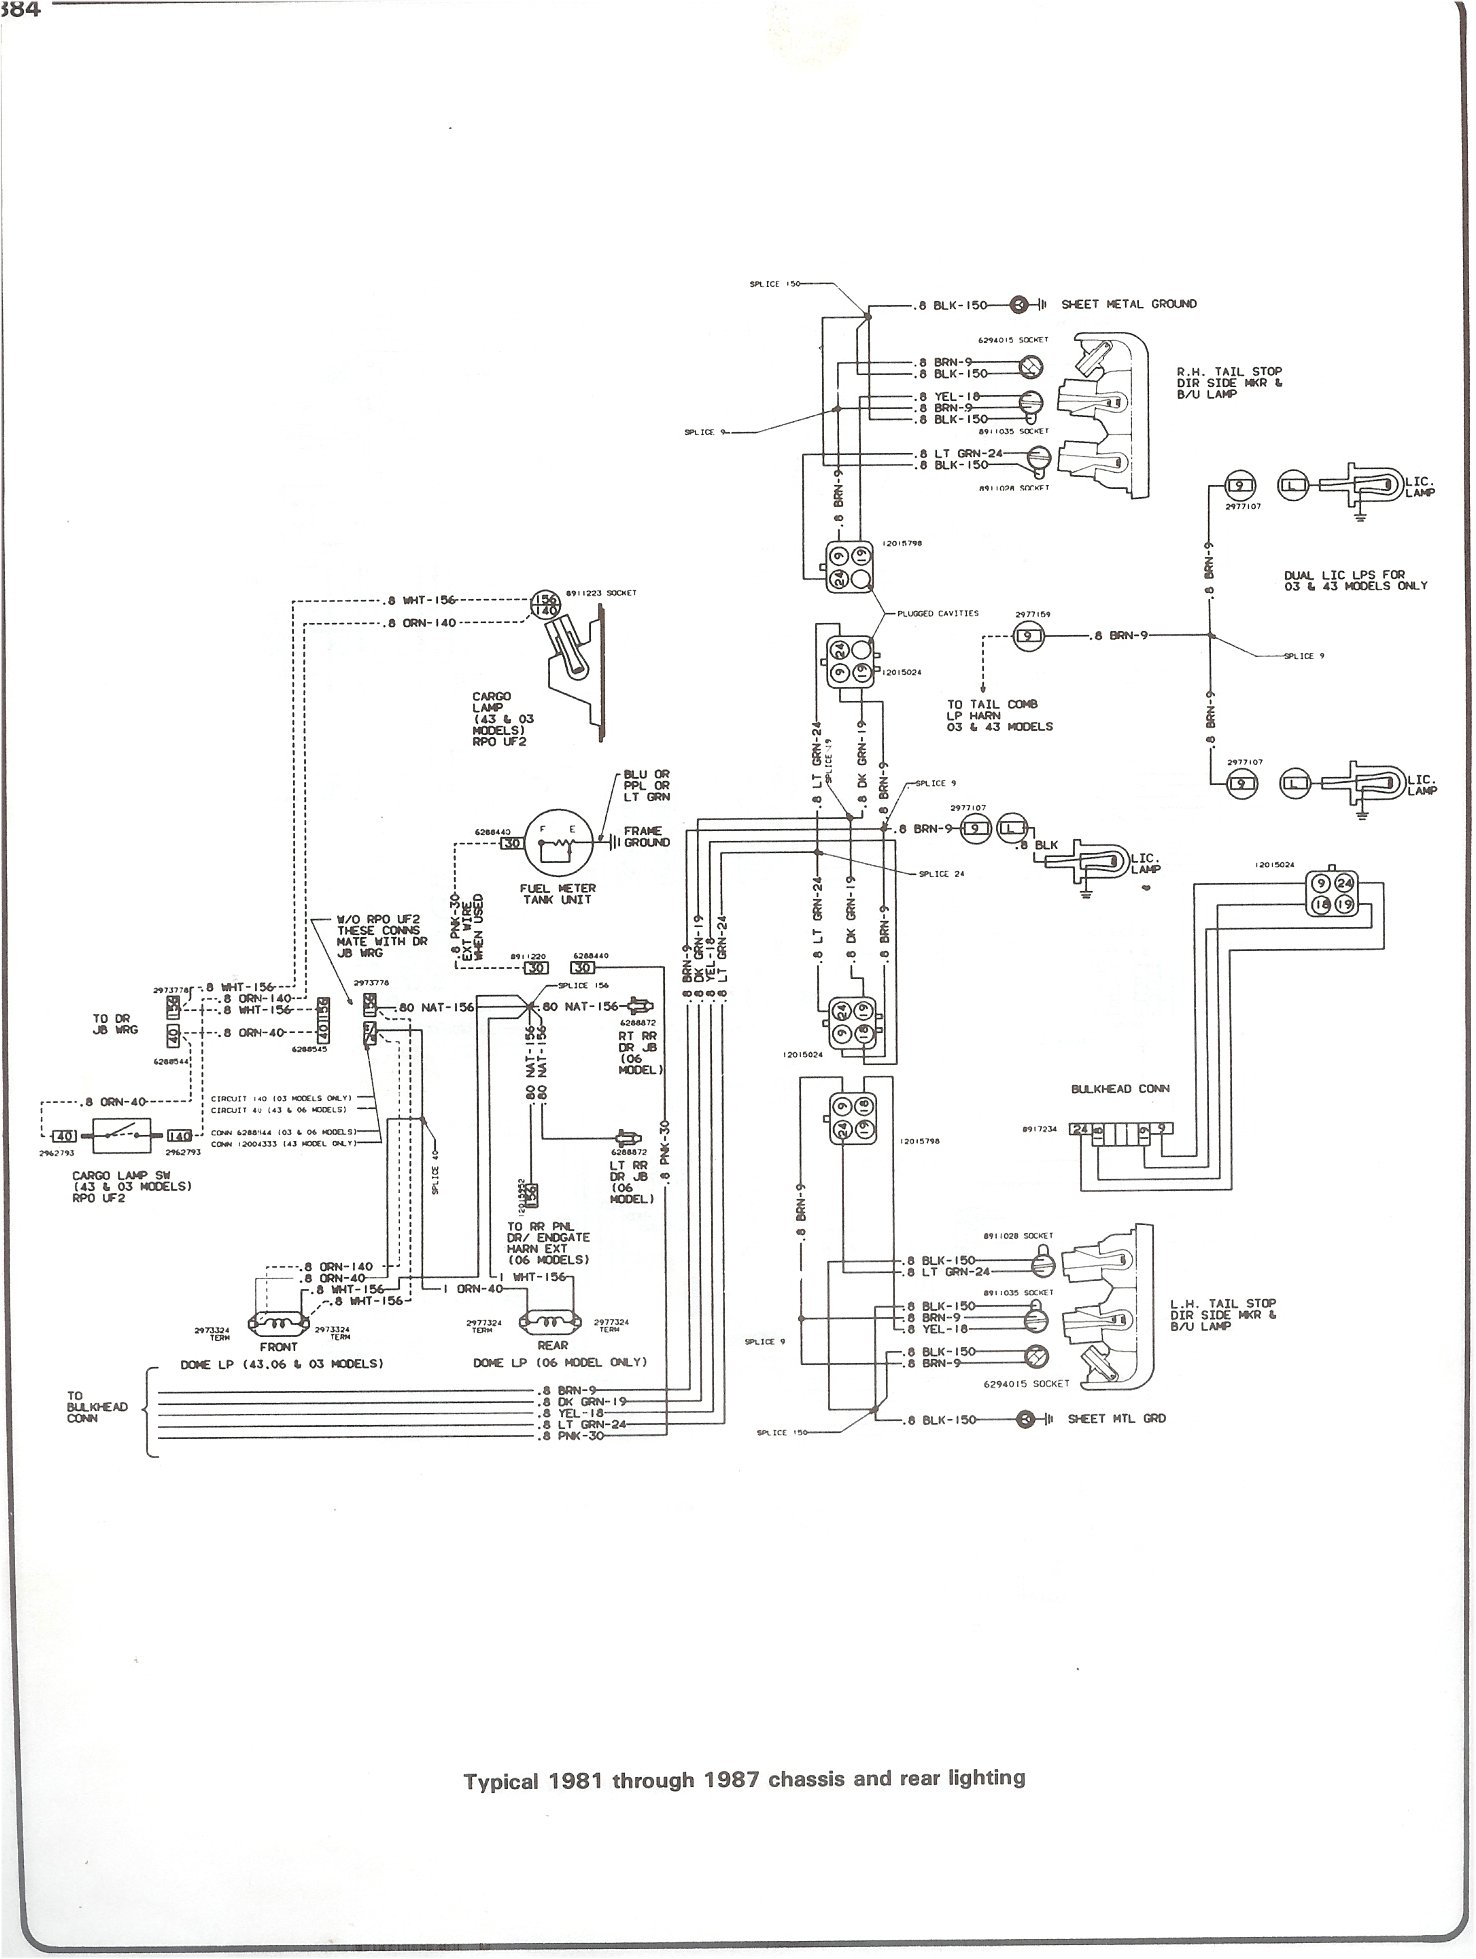 81 87_chass_rr_light complete 73 87 wiring diagrams c10 wiring diagram at edmiracle.co